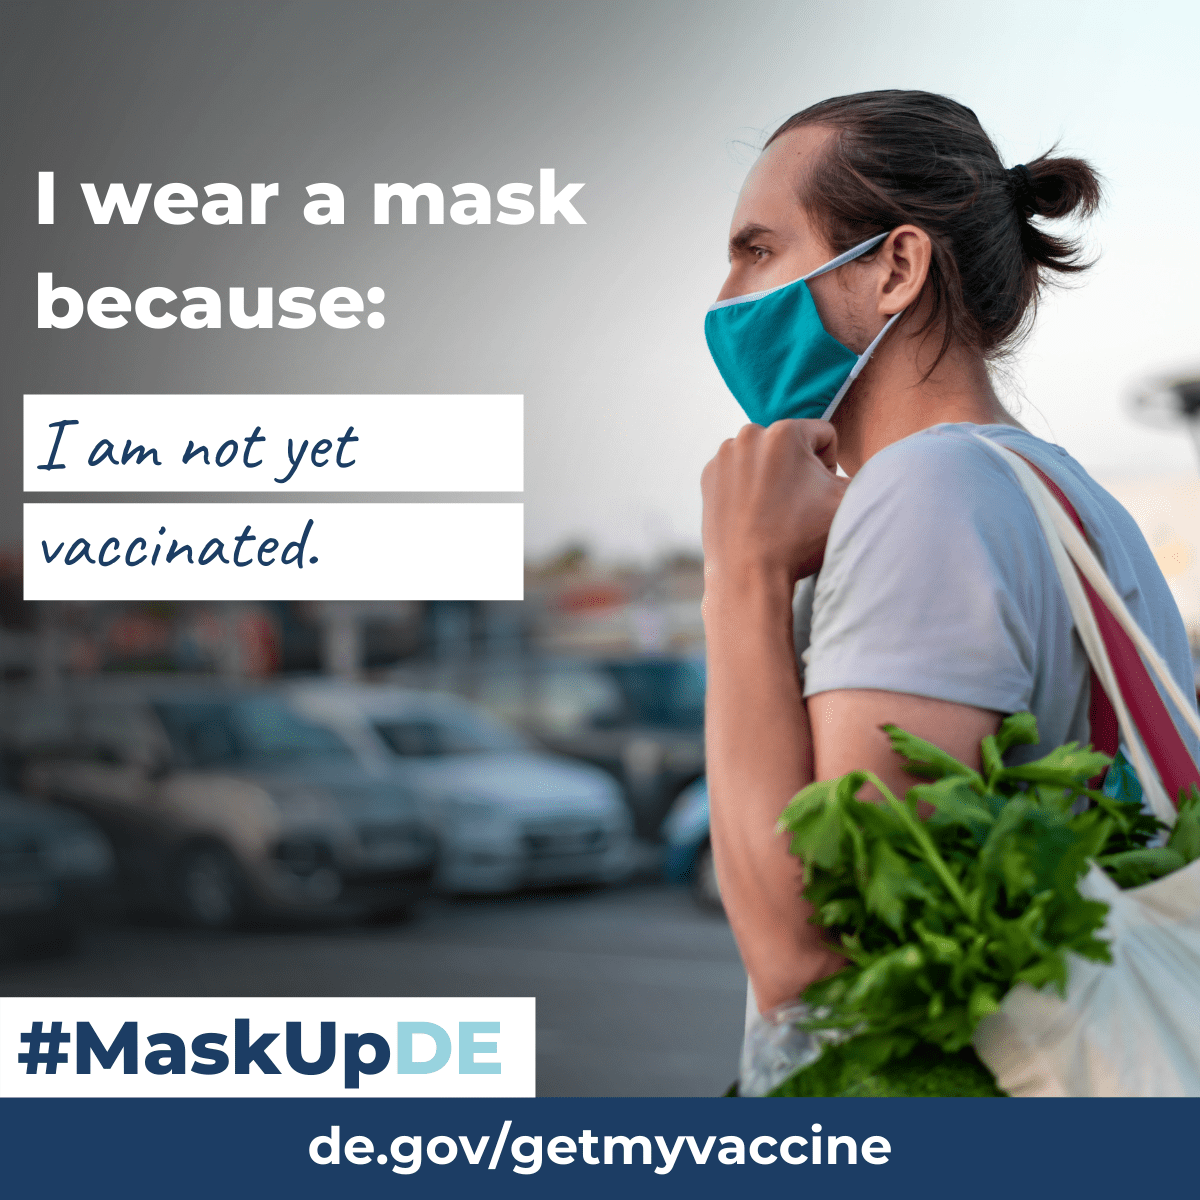 I wear a mask because...I am not fully vaccinated. A male walks out of a grocery store with a cloth face mask on.